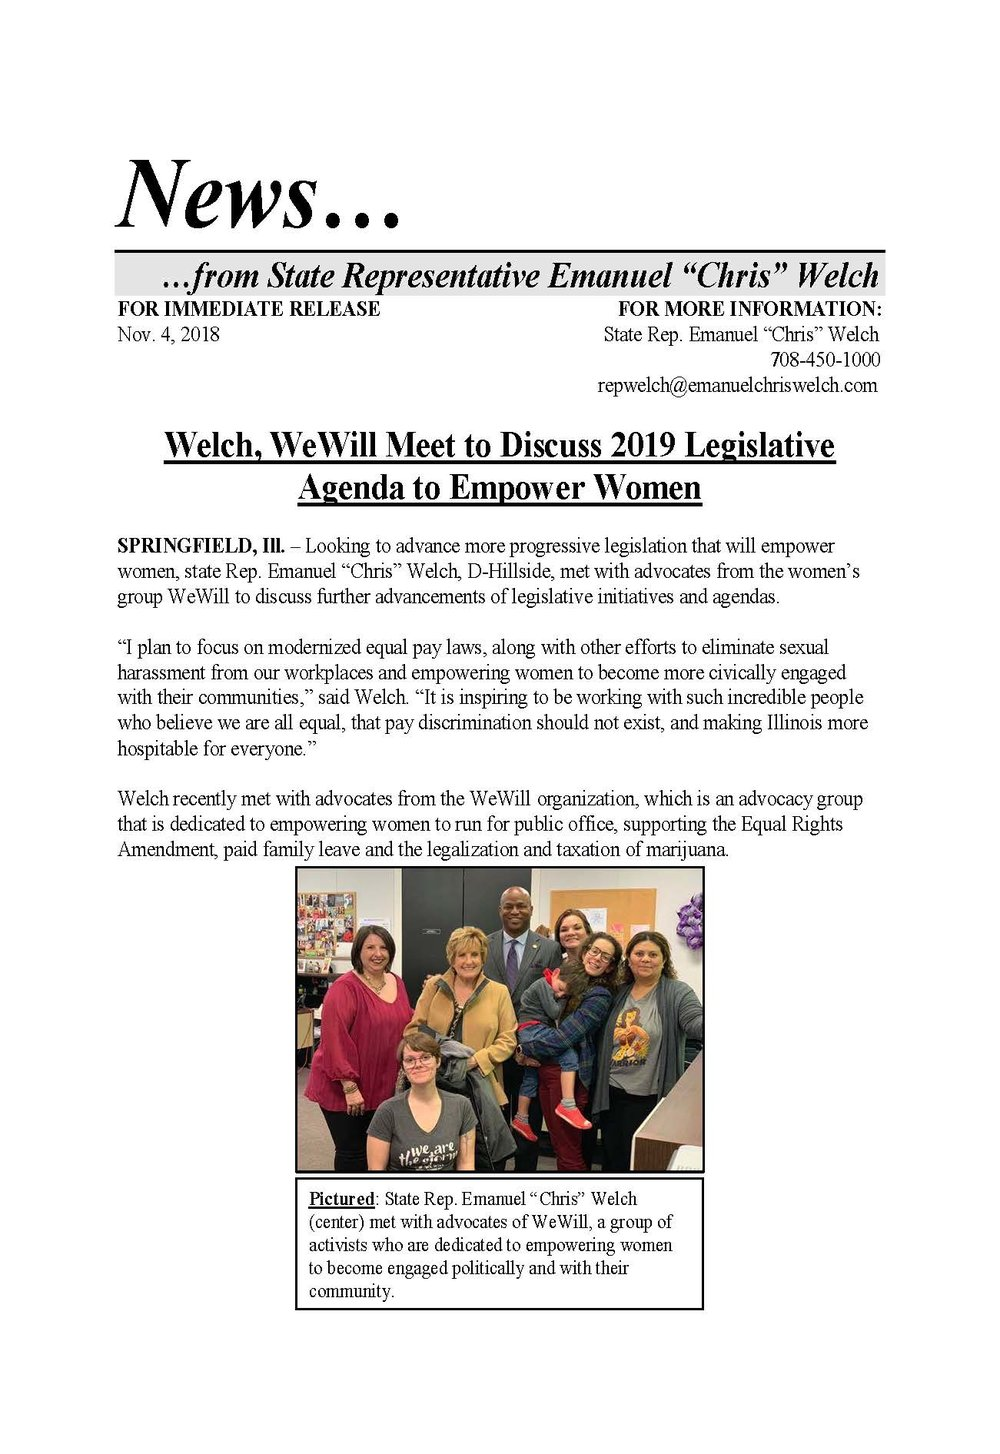 Welch, WeWill Meet to Discuss 2019 Legislative Agenda to Empower Women  (November 4, 2018)